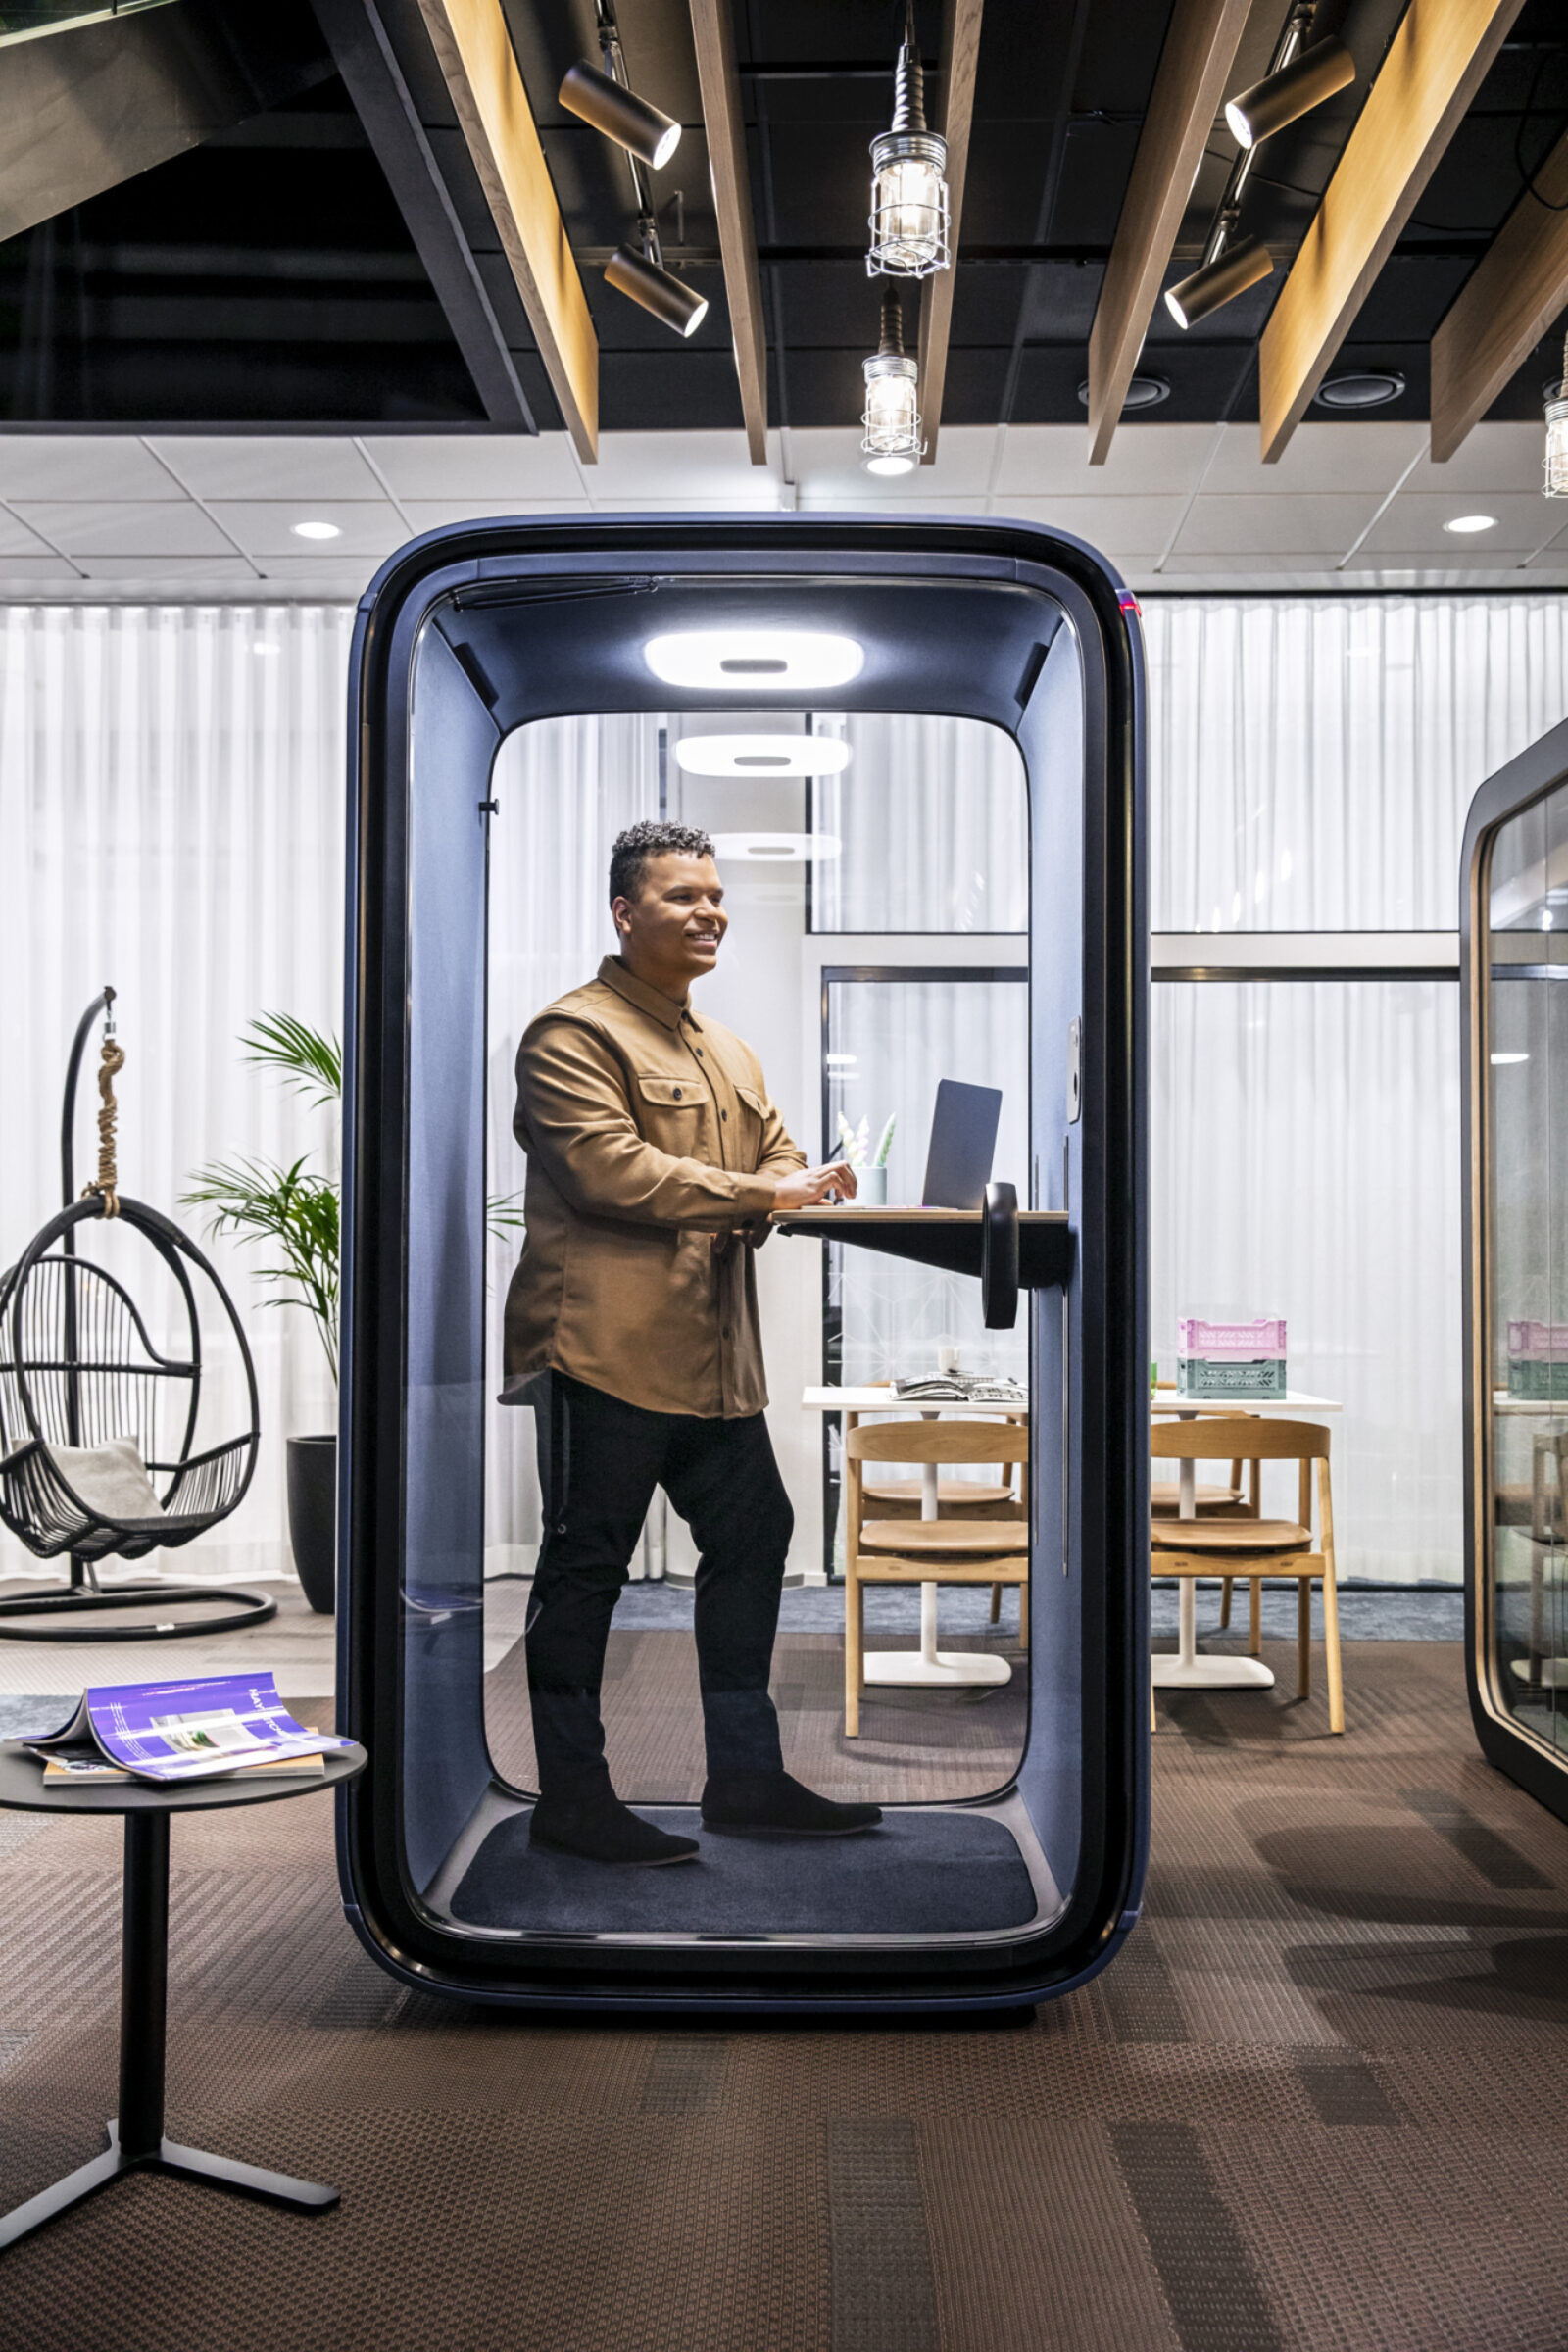 Framery office soundproof phone booth, privacy pod, soundproof booth, solo pod, connected pod boston nyc